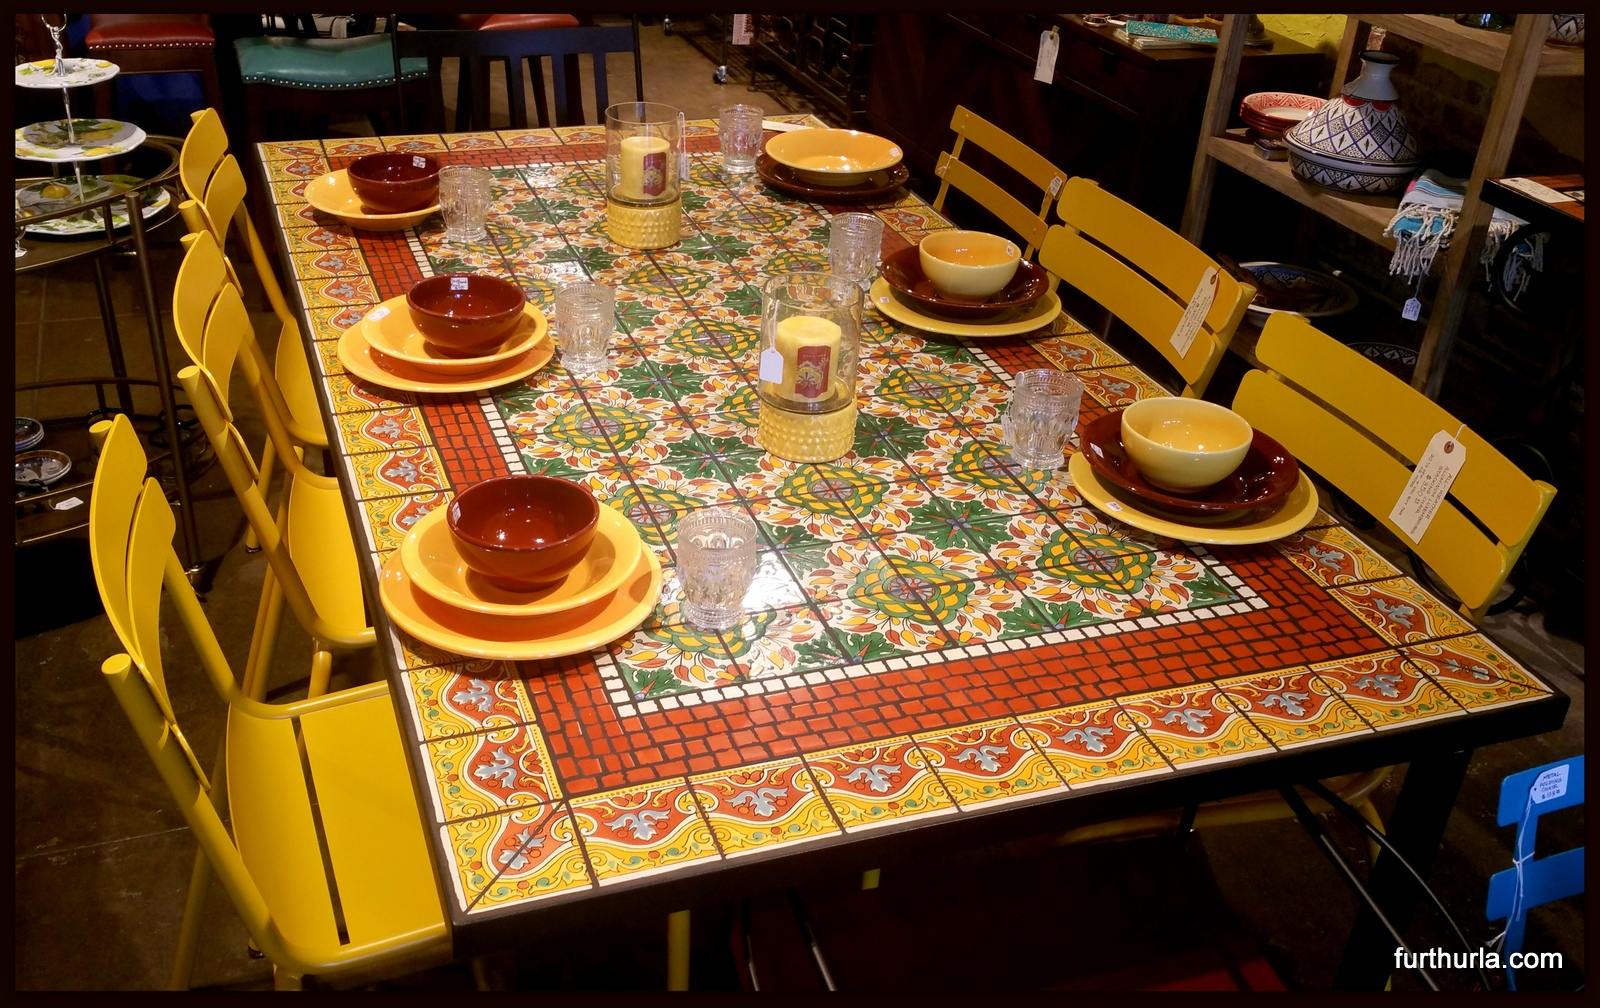 TILE MOSAIC DINING TABLE LLAMARADA